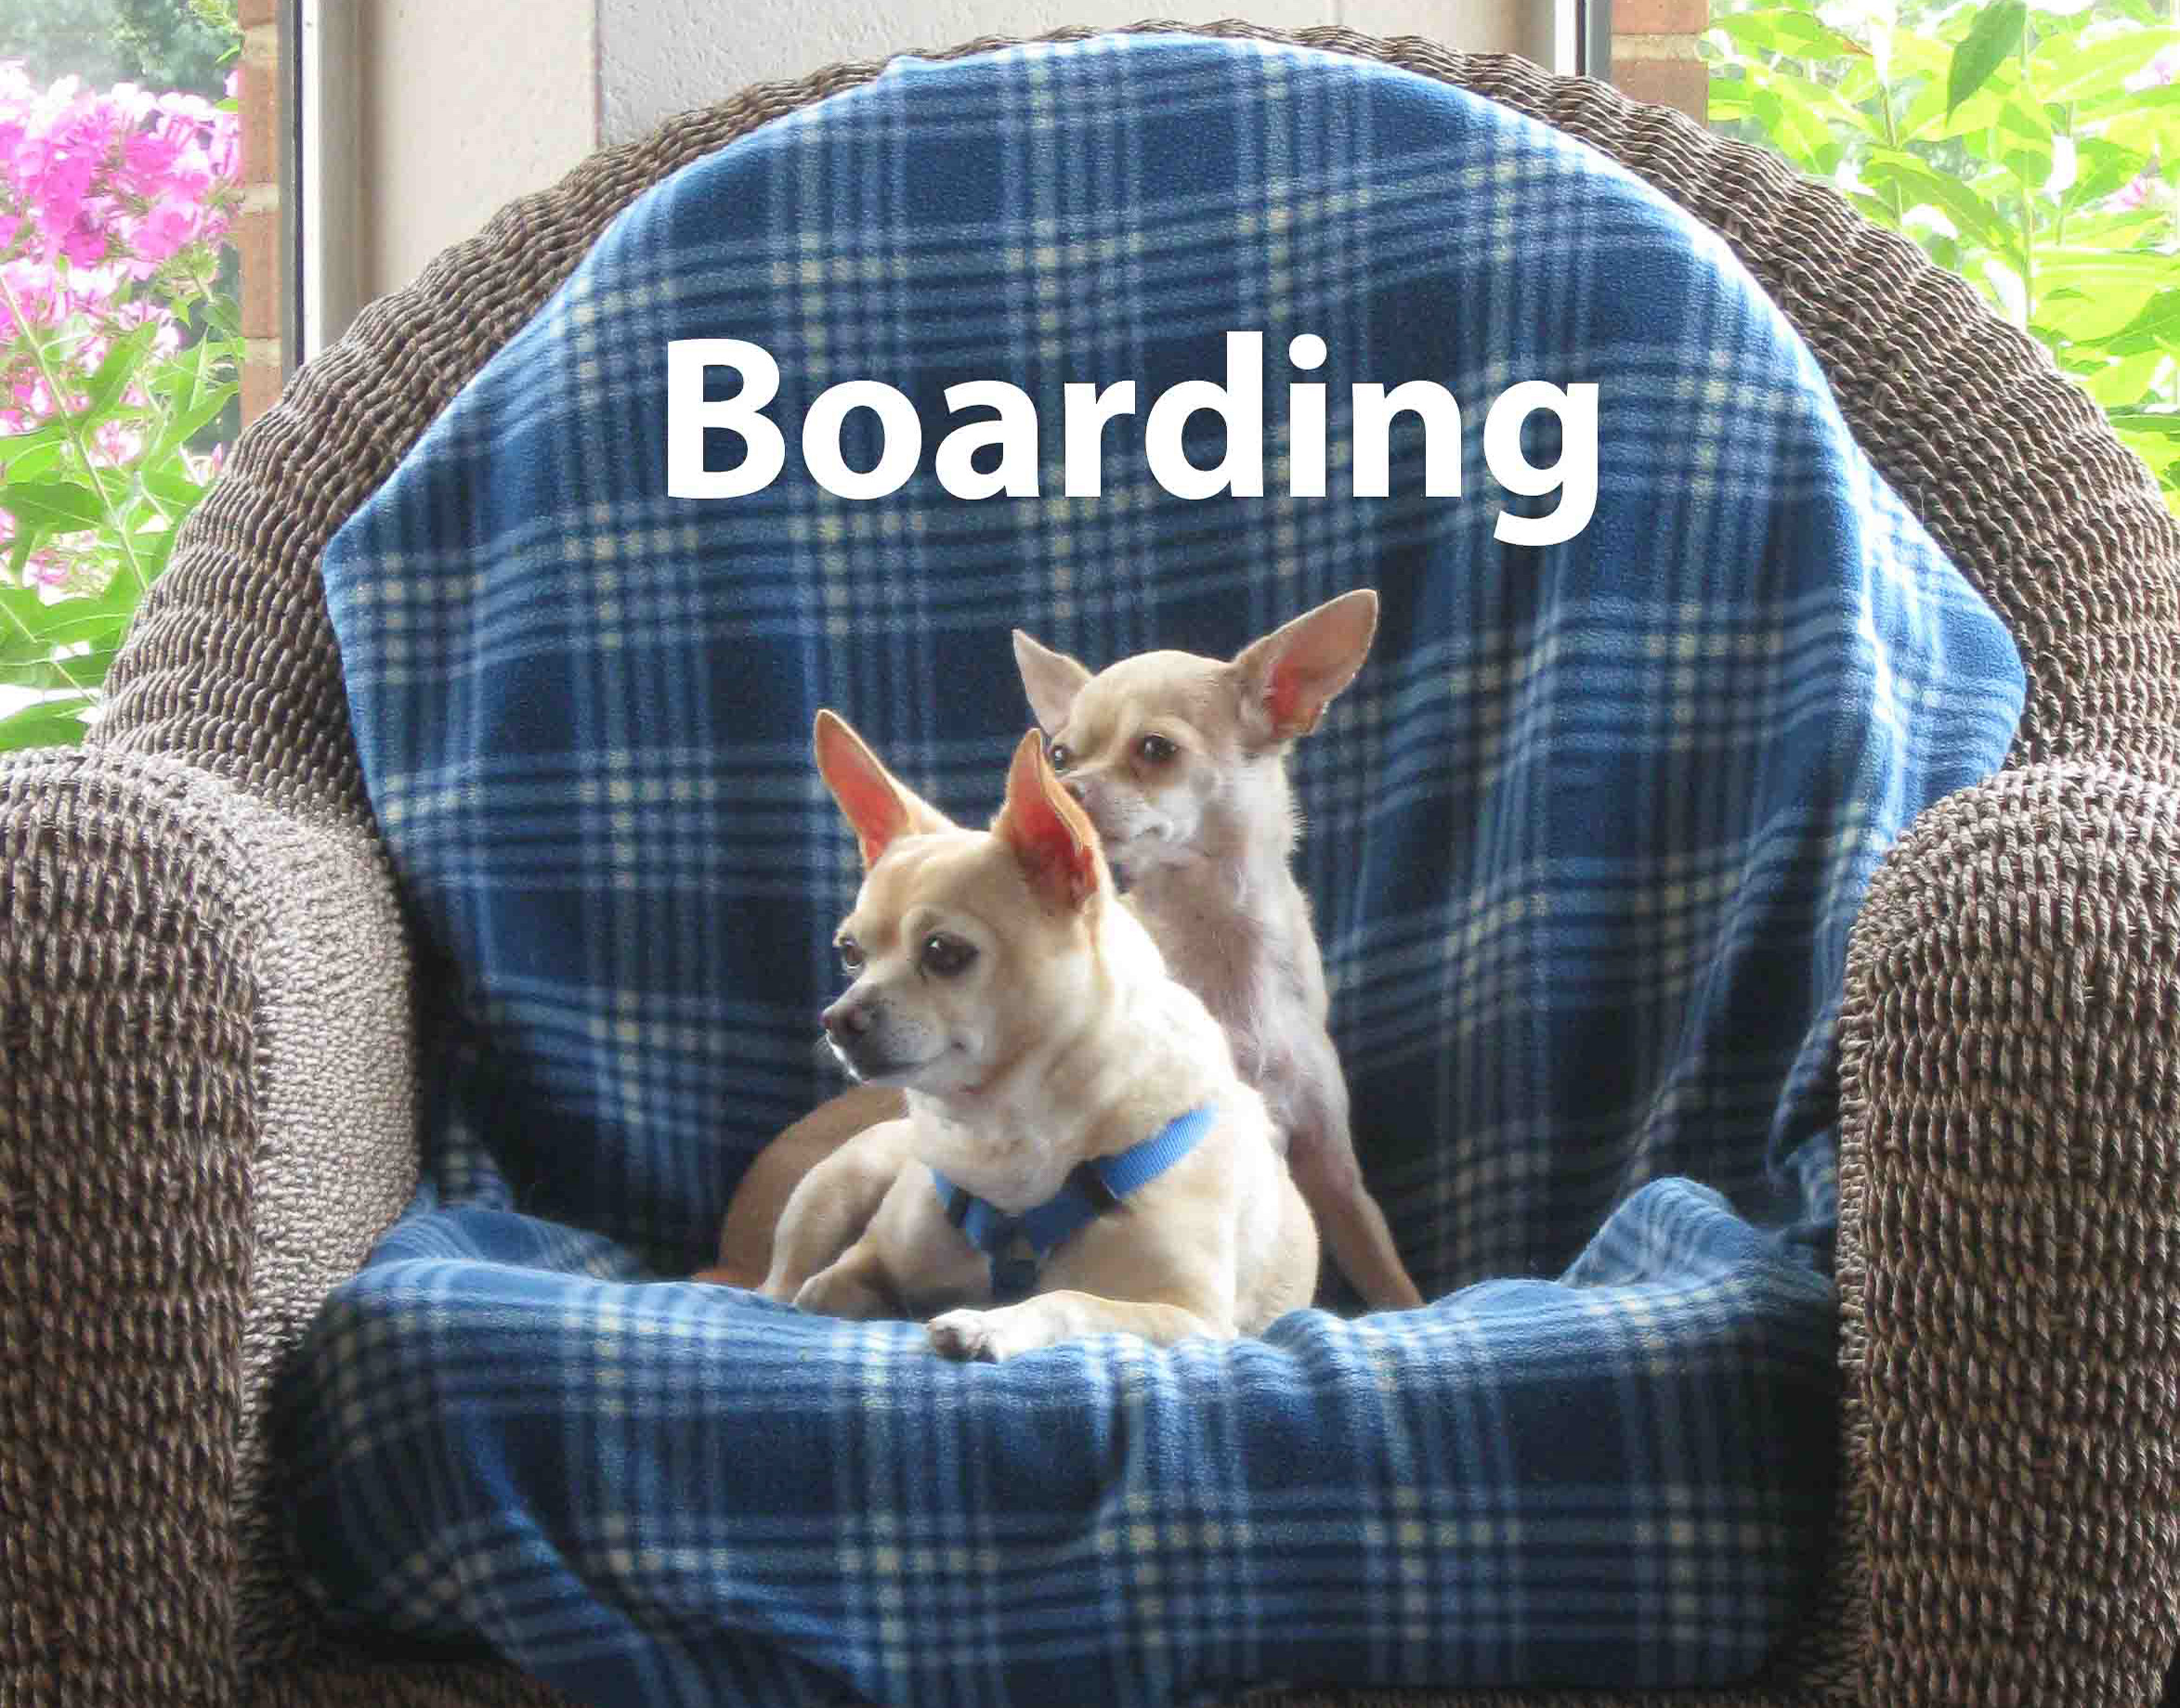 Petite pet inn boarding grooming training and daycare for small dogs boarding solutioingenieria Images